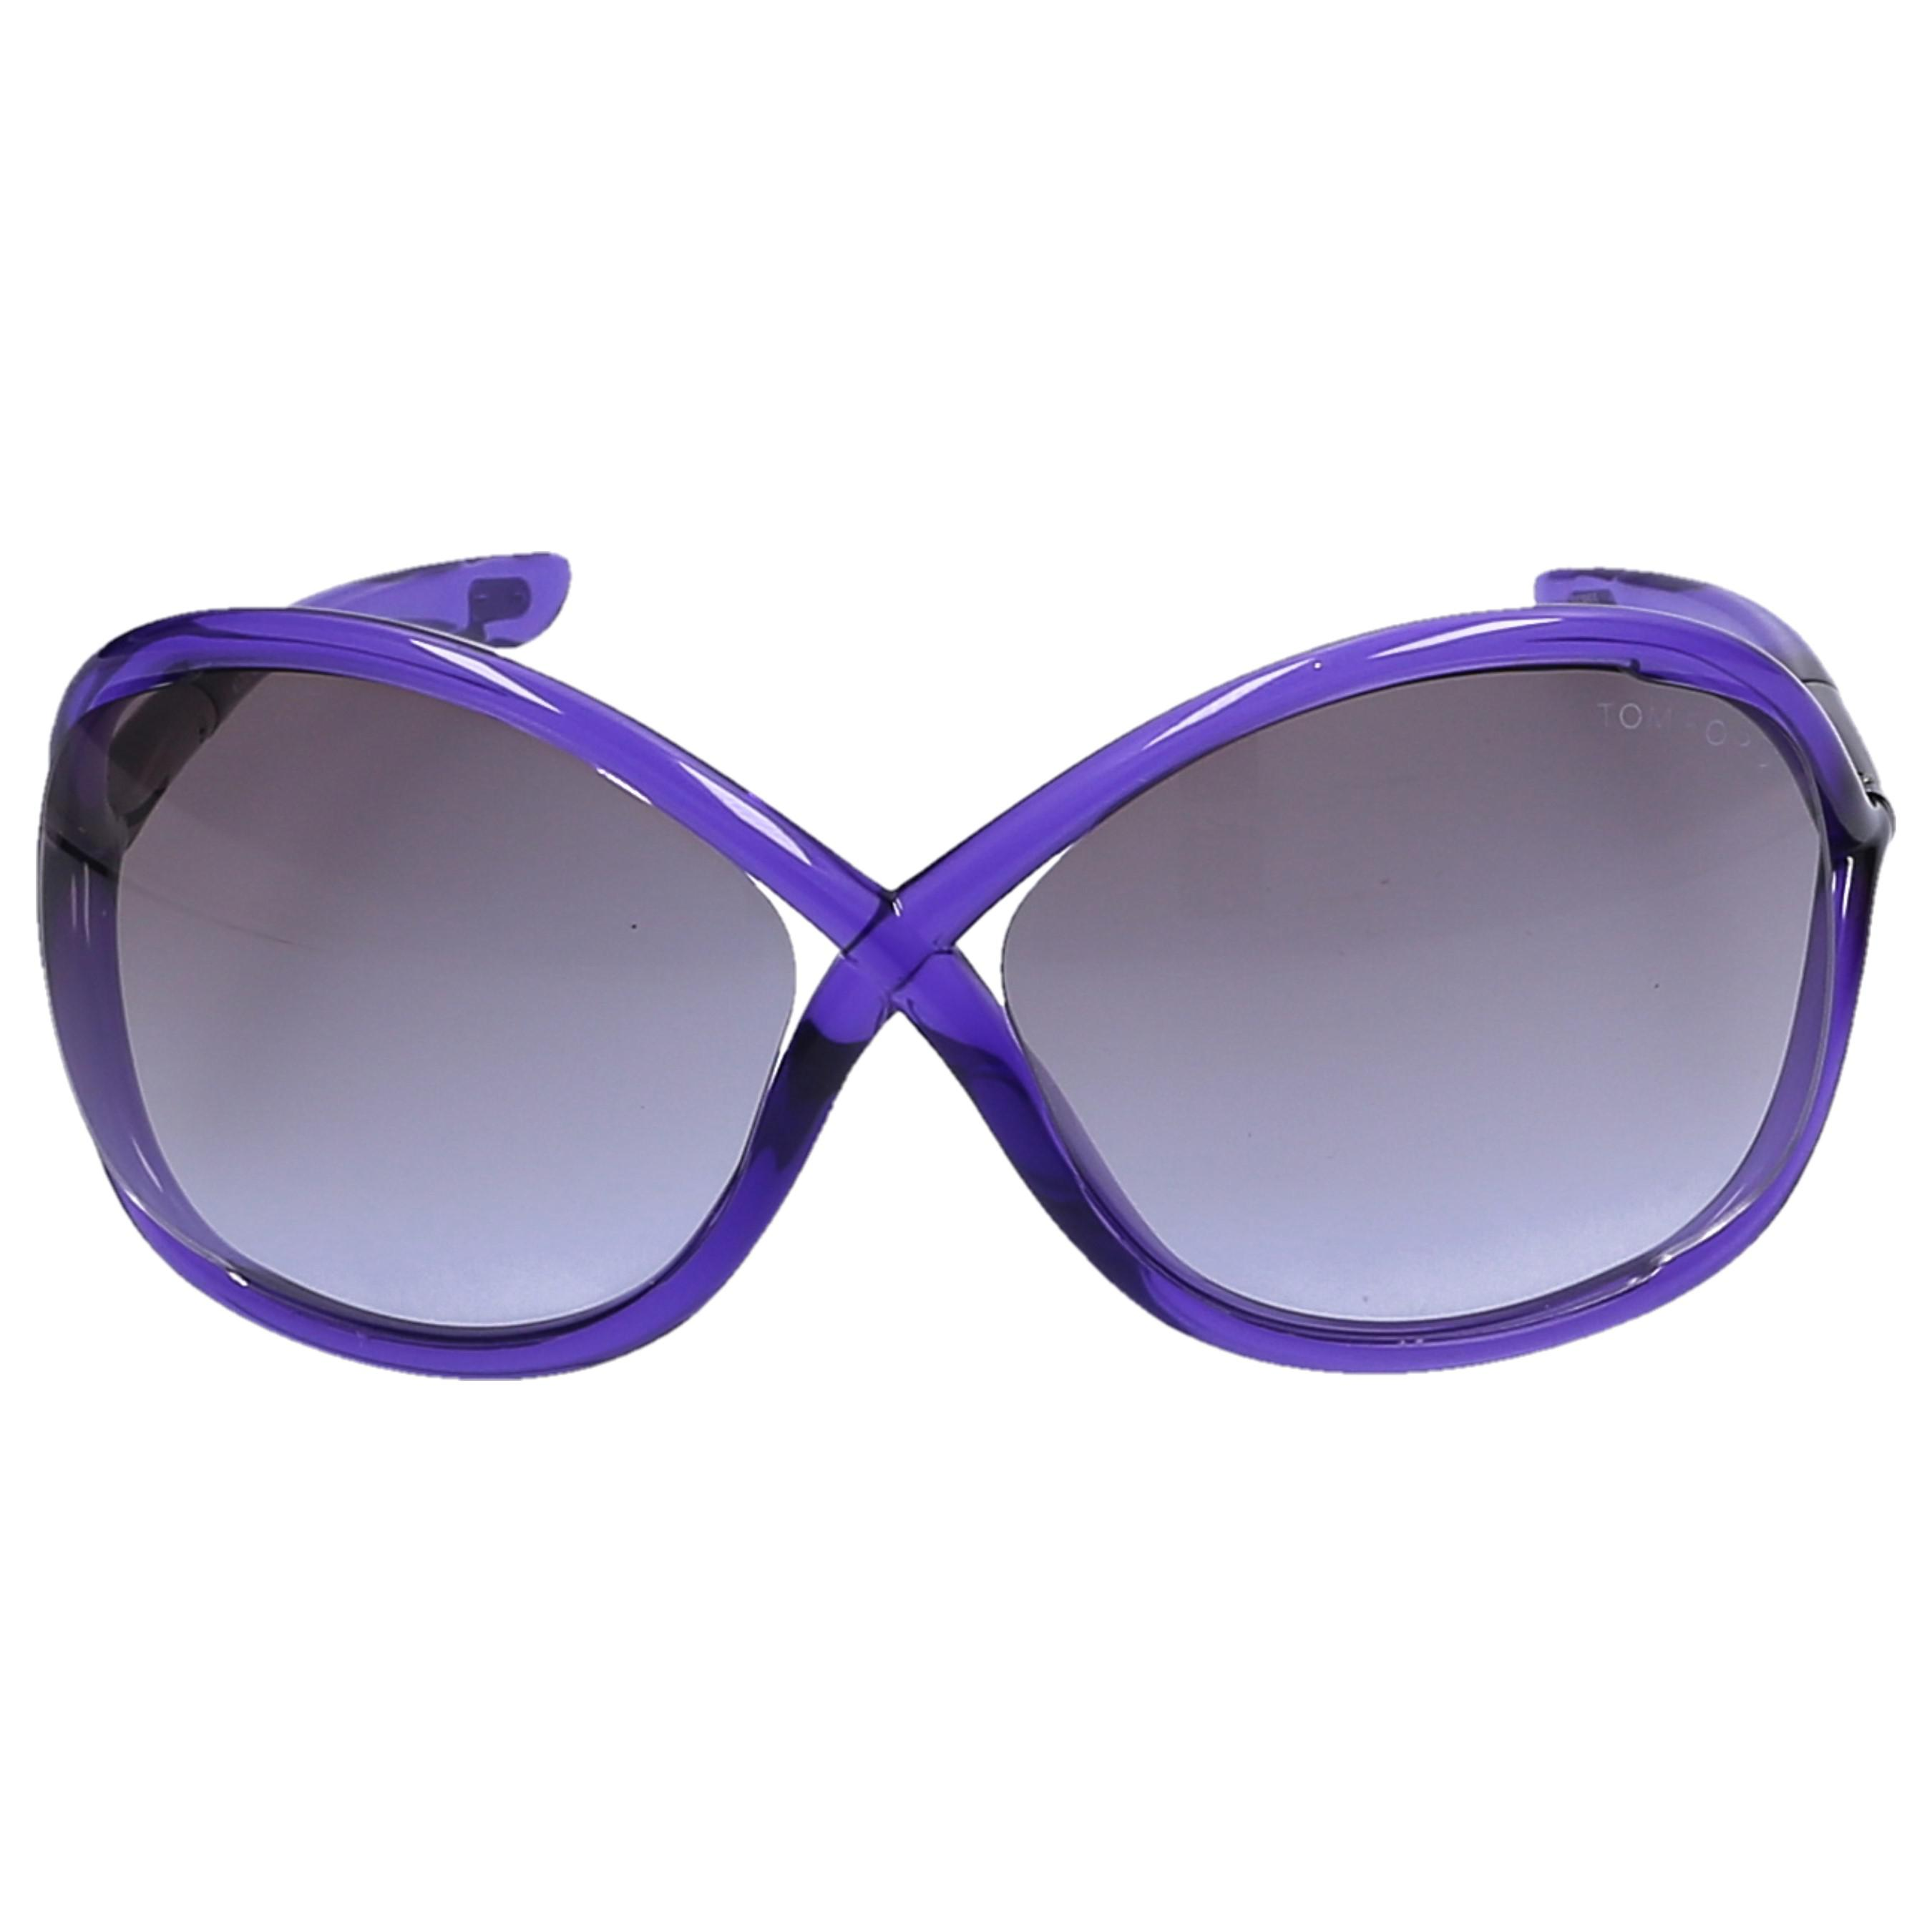 d2a6871be6af Lyst - Tom Ford Sunglasses Oversize 9 Acetate Purple in Gray